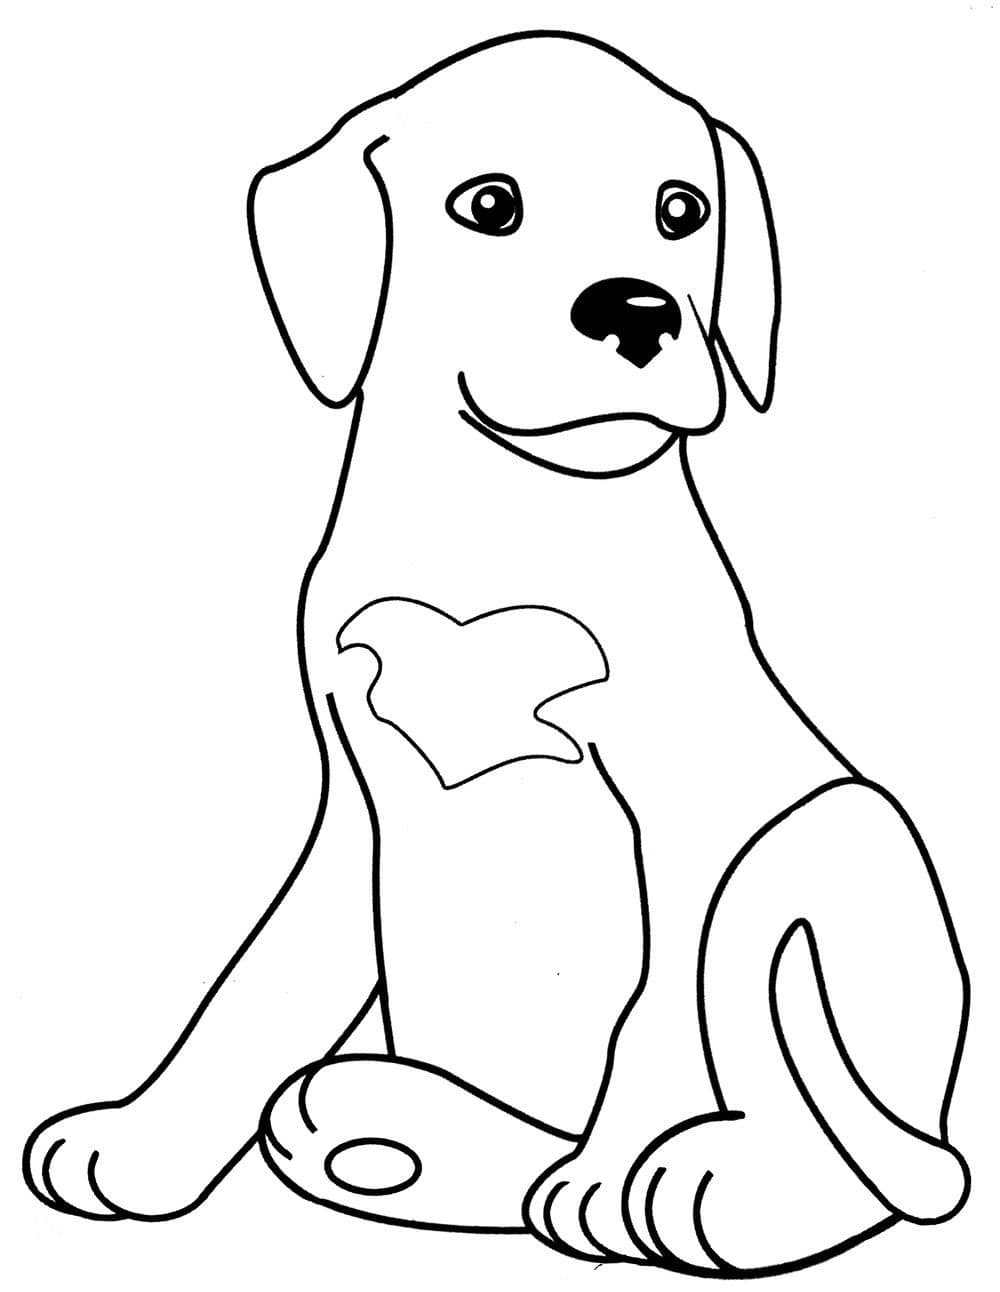 dog coloring pages for toddlers halloween dog coloring pages at getcoloringscom free coloring for dog toddlers pages